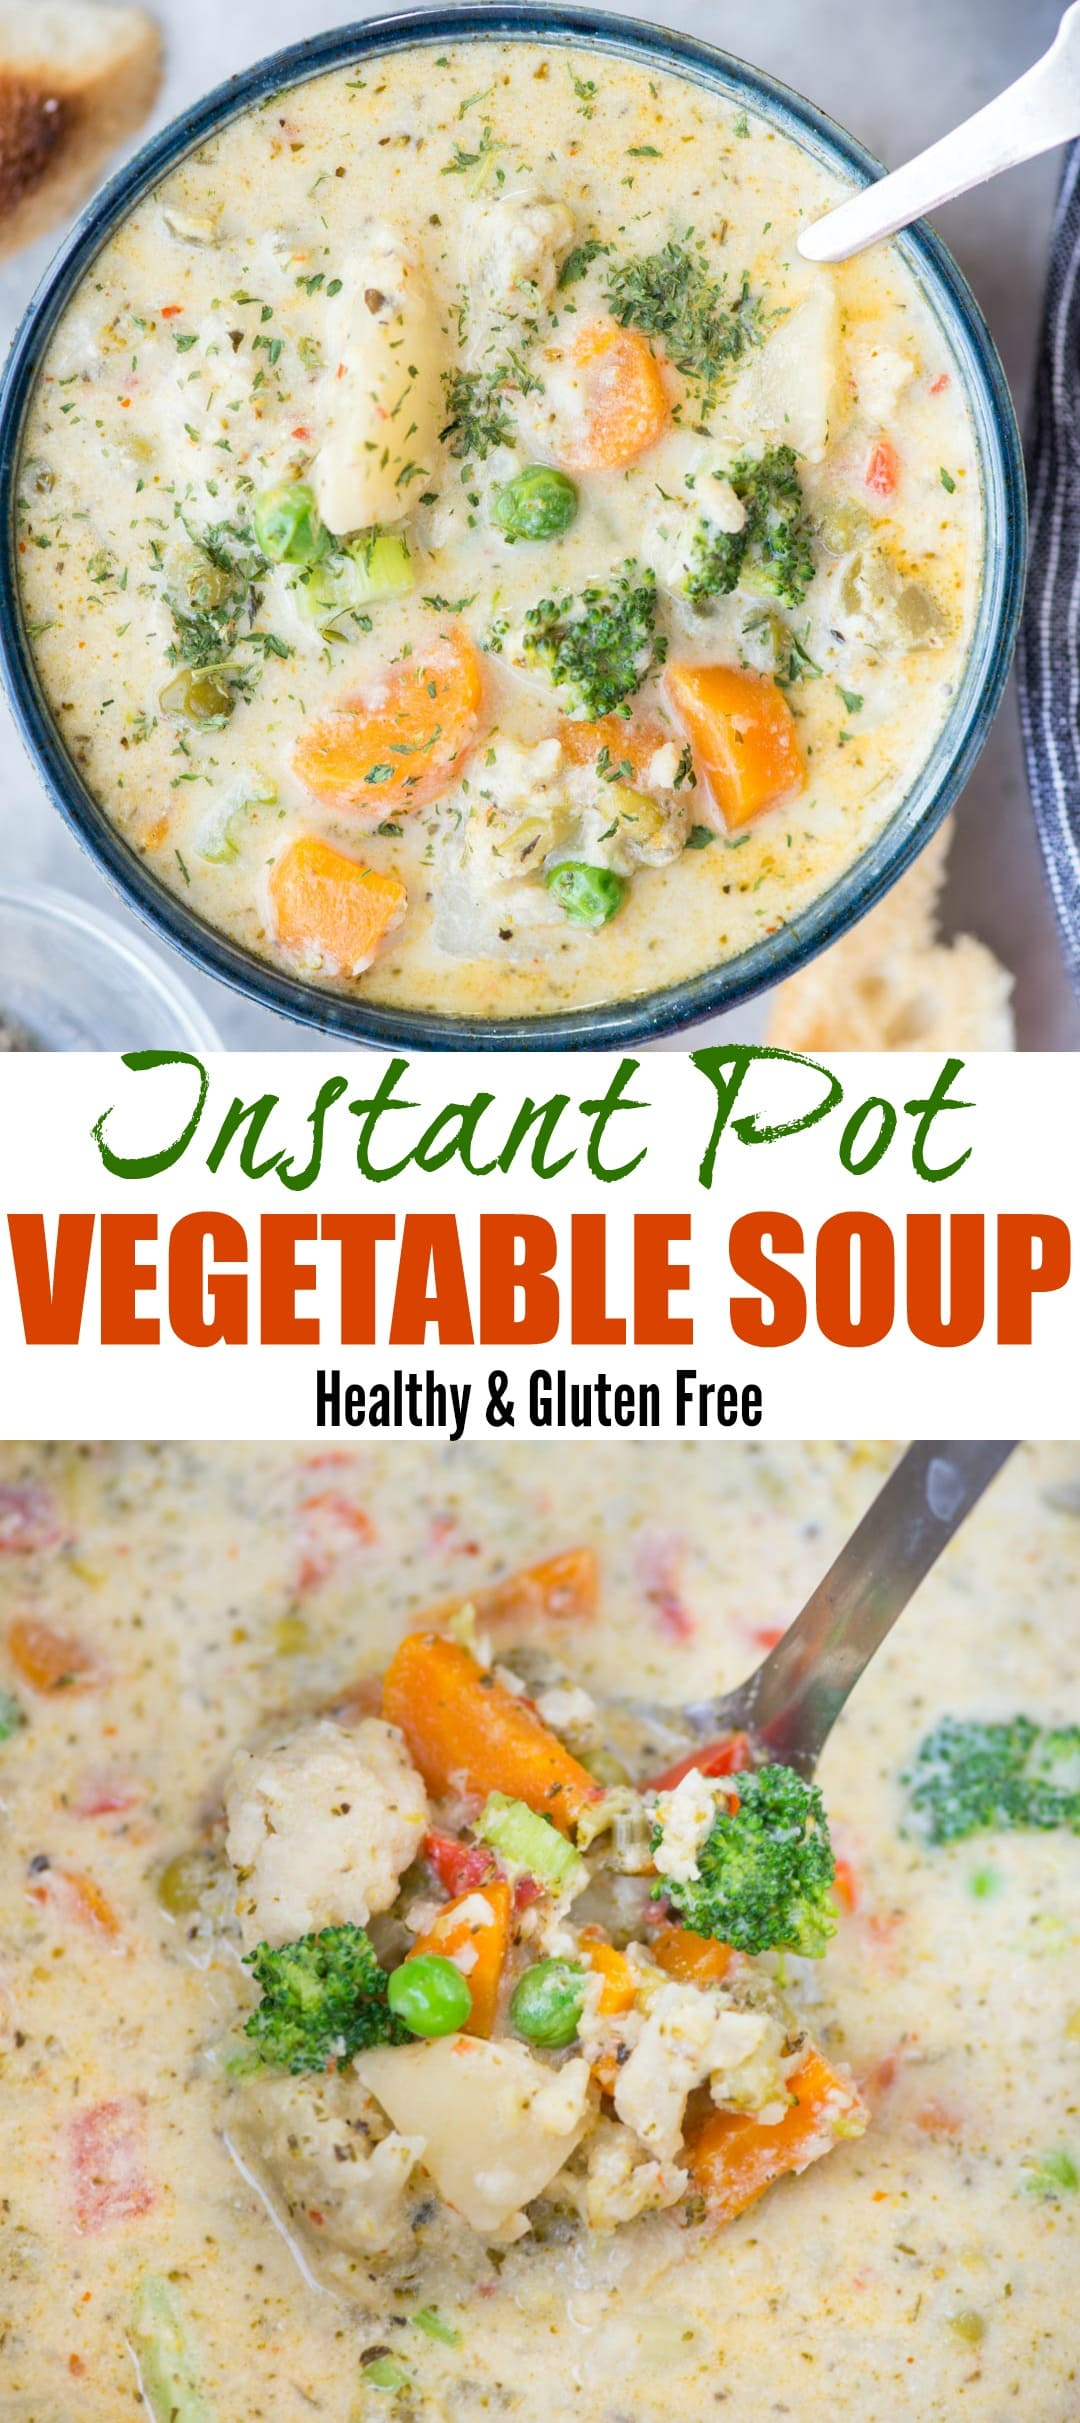 Creamy Vegetable Soup made with loads of vegetable is healthy and gluten-free. The soup has the richness from Parmesan Cheese and is really filling. There are instructions to make this soup both in the Instant Pot and Stovetop.